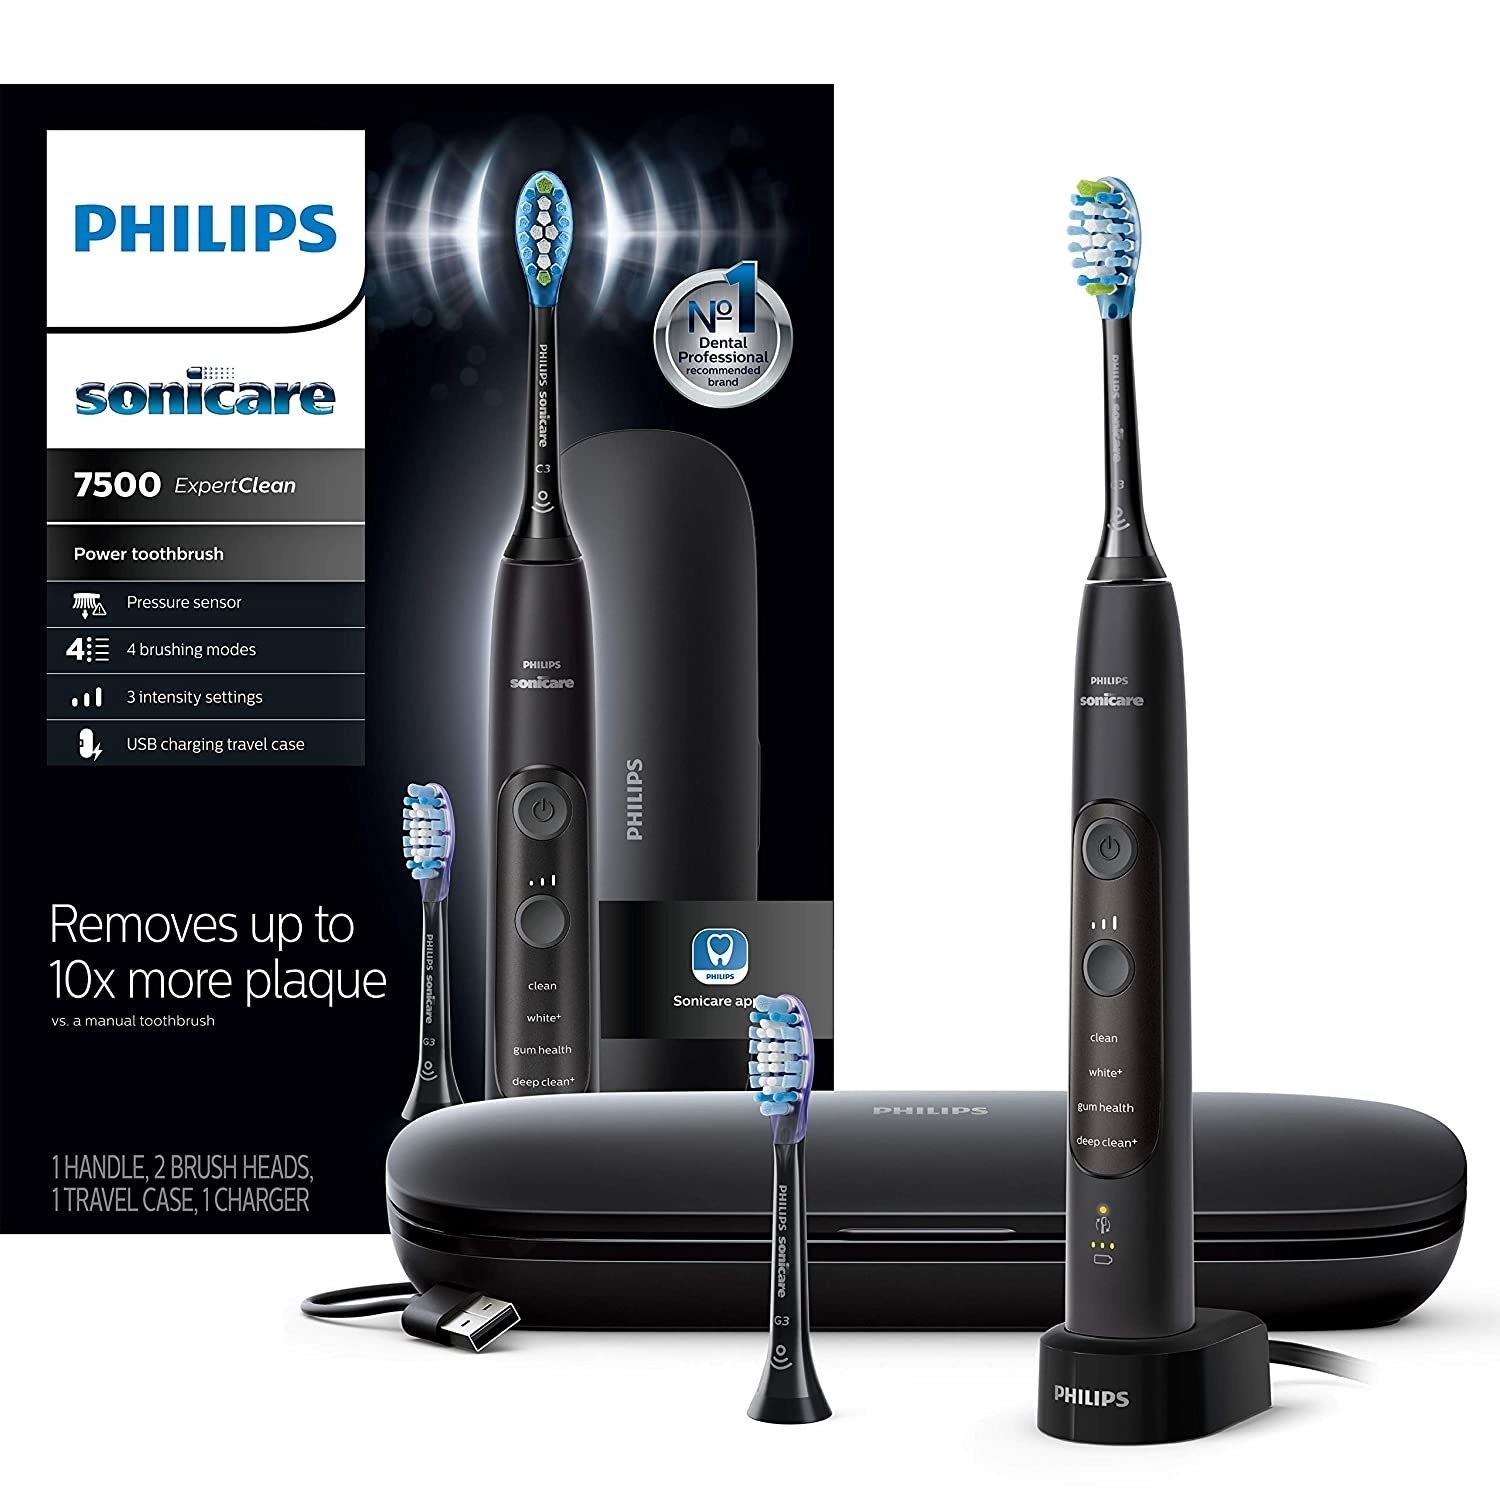 The toothbrush in black